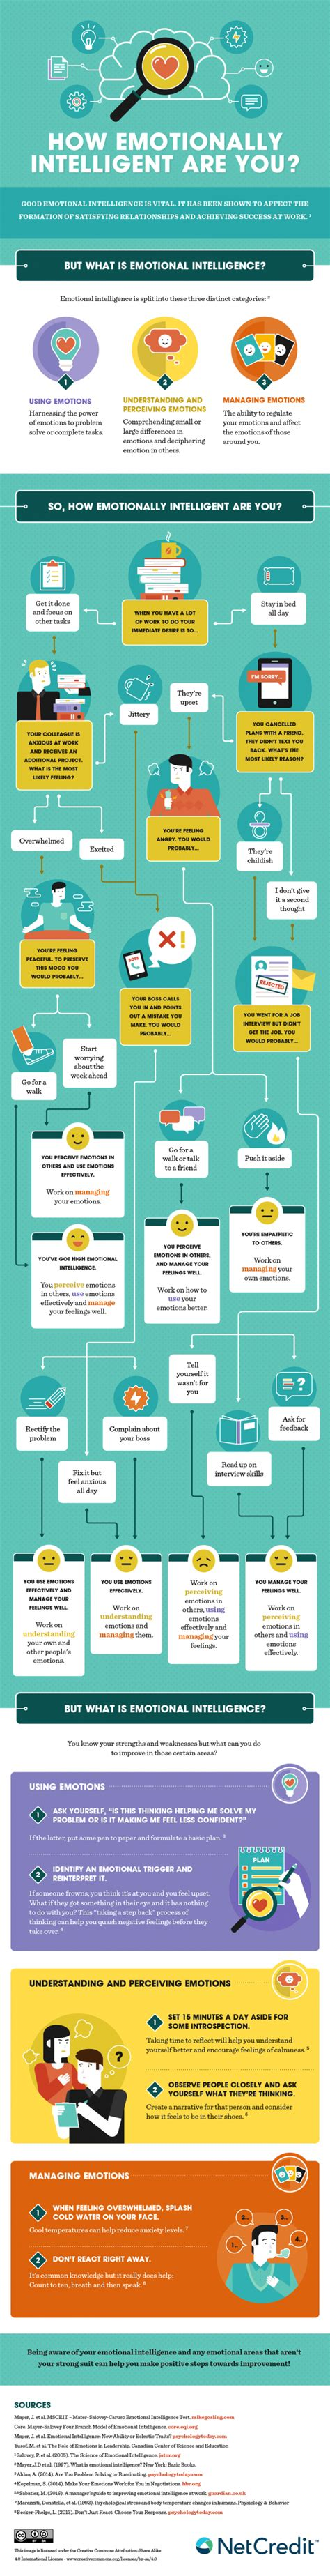 Improve Your Emotional Intelligence what s your emotional iq daily infographic